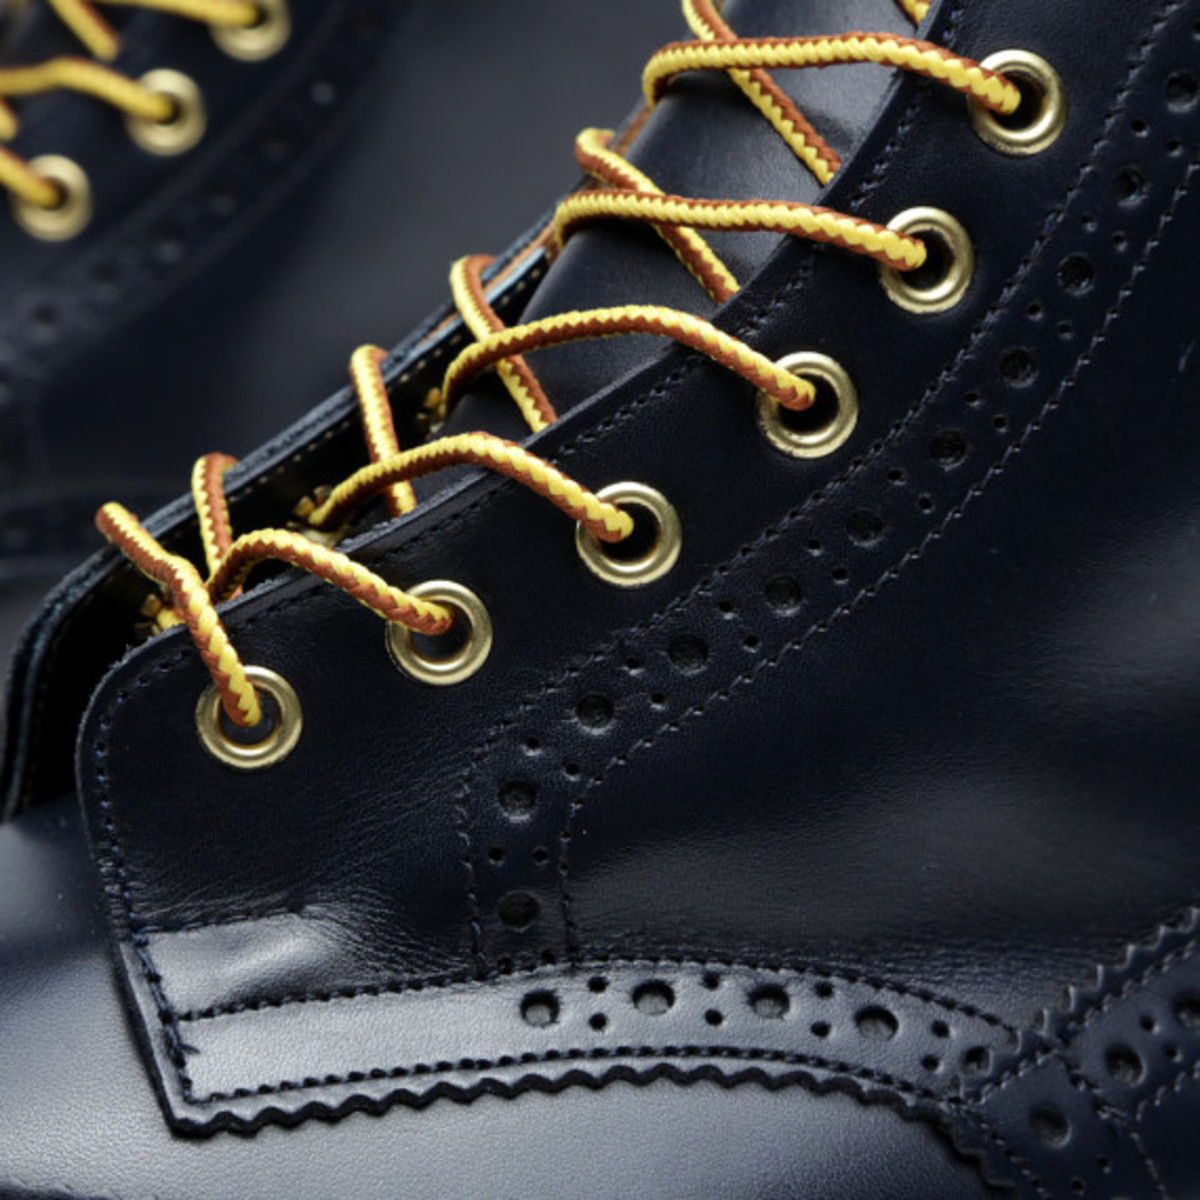 end-trickers-vibram-sole-stow-boot-36